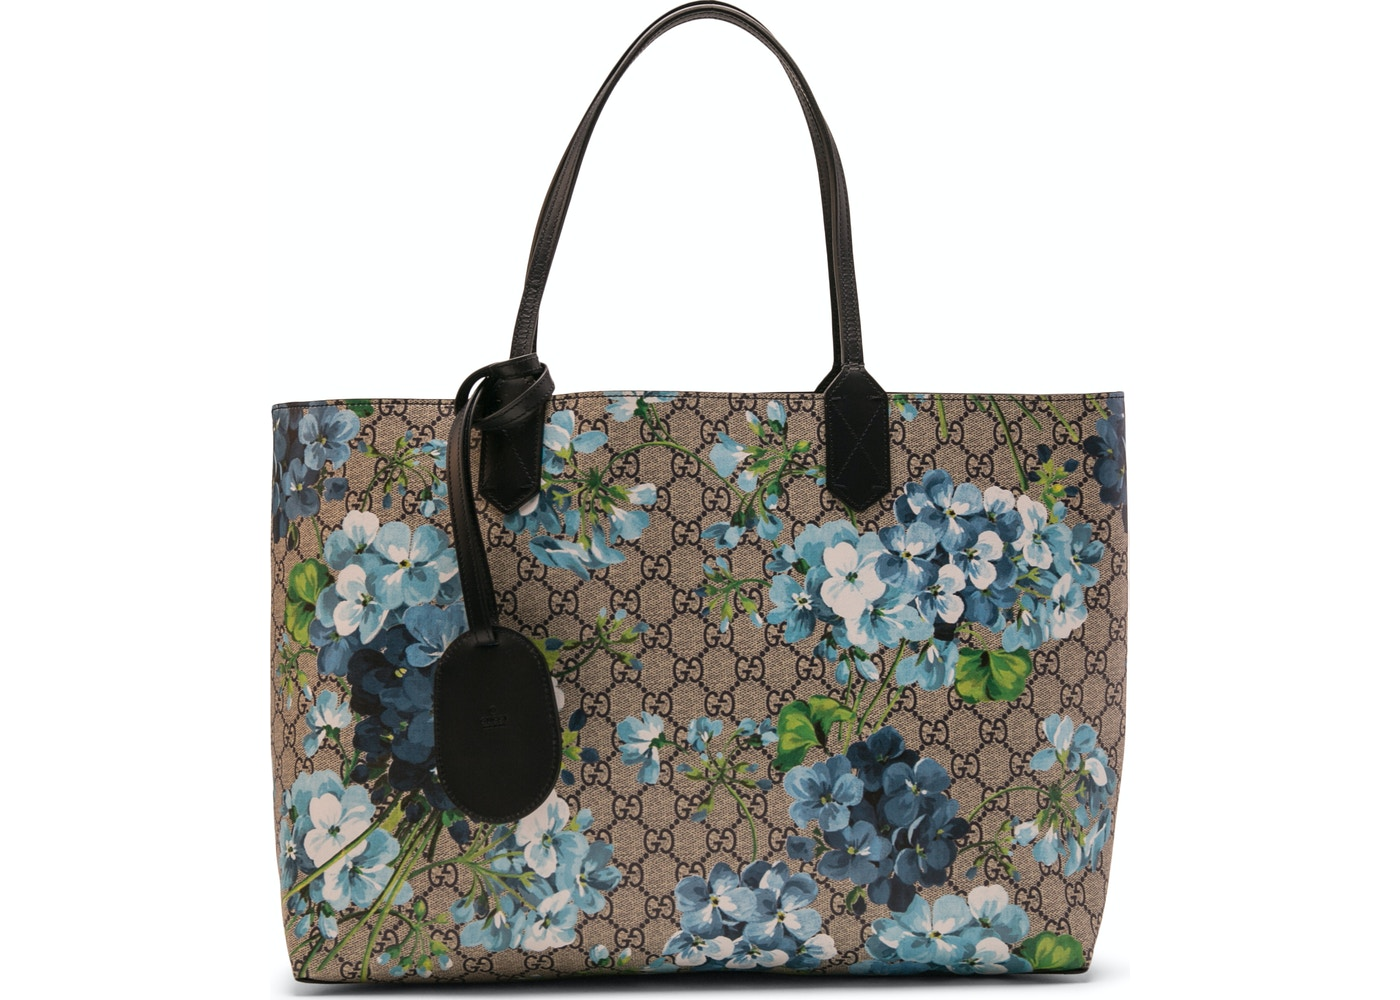 20d725404234 Gucci Reversible Tote GG Blooms Medium Beige/Blue. GG Blooms Medium  Beige/Blue